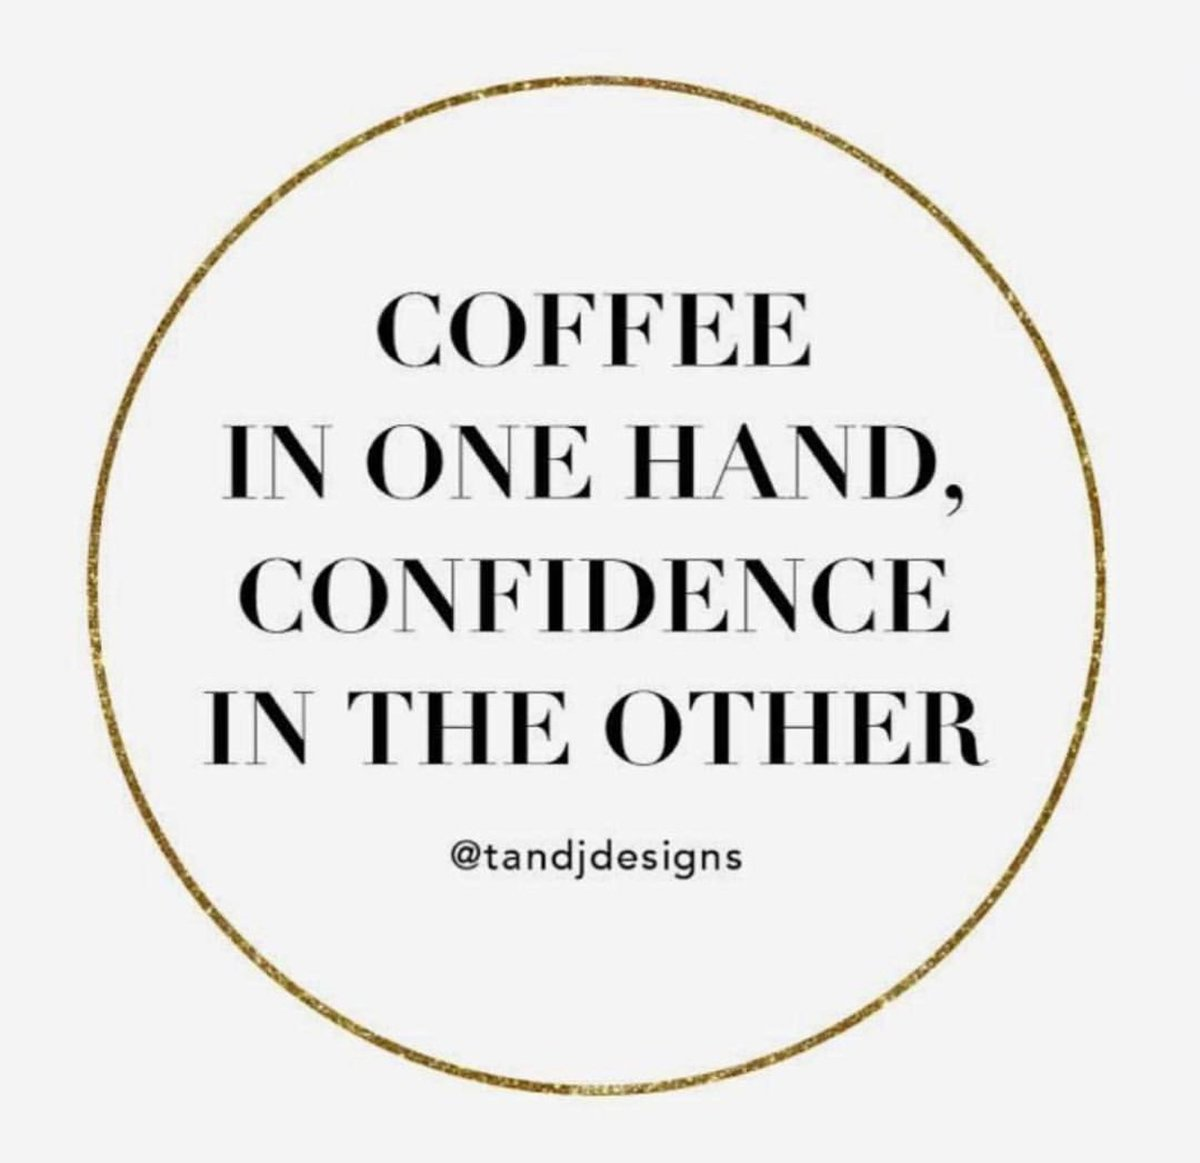 Great tip for anyone, whether you&#39;re a leader or meeting someone. #love #coffee #confidence #coffeequotes #goodmorning <br>http://pic.twitter.com/wPLn7q9WlK